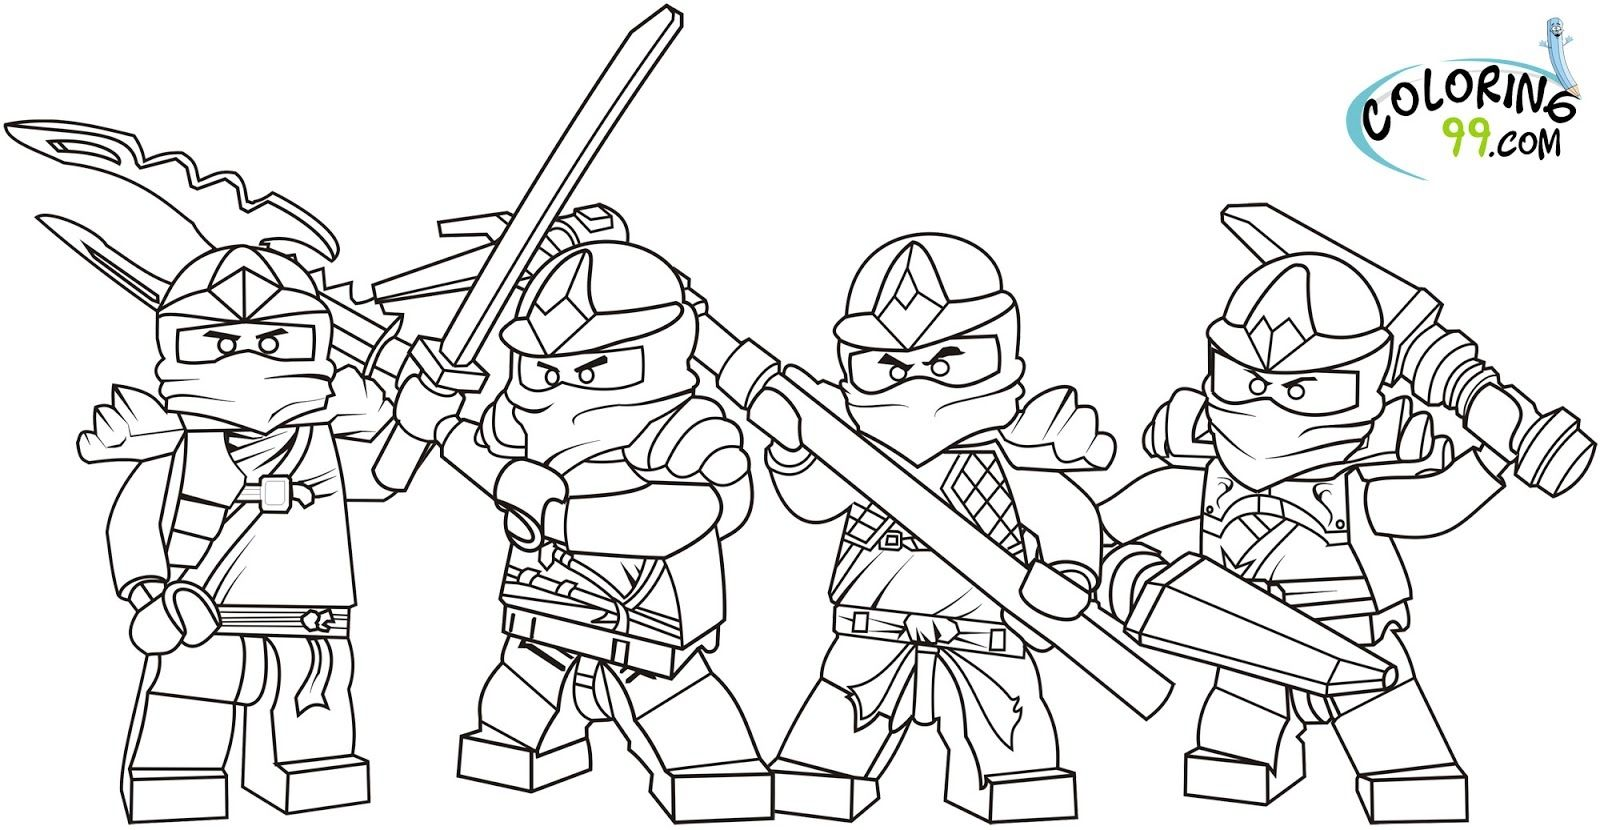 Download Incredible Ninja Coloring Pages Printable For Free Http Designkids Info Download Incredib Lego Coloring Pages Ninjago Coloring Pages Lego Coloring